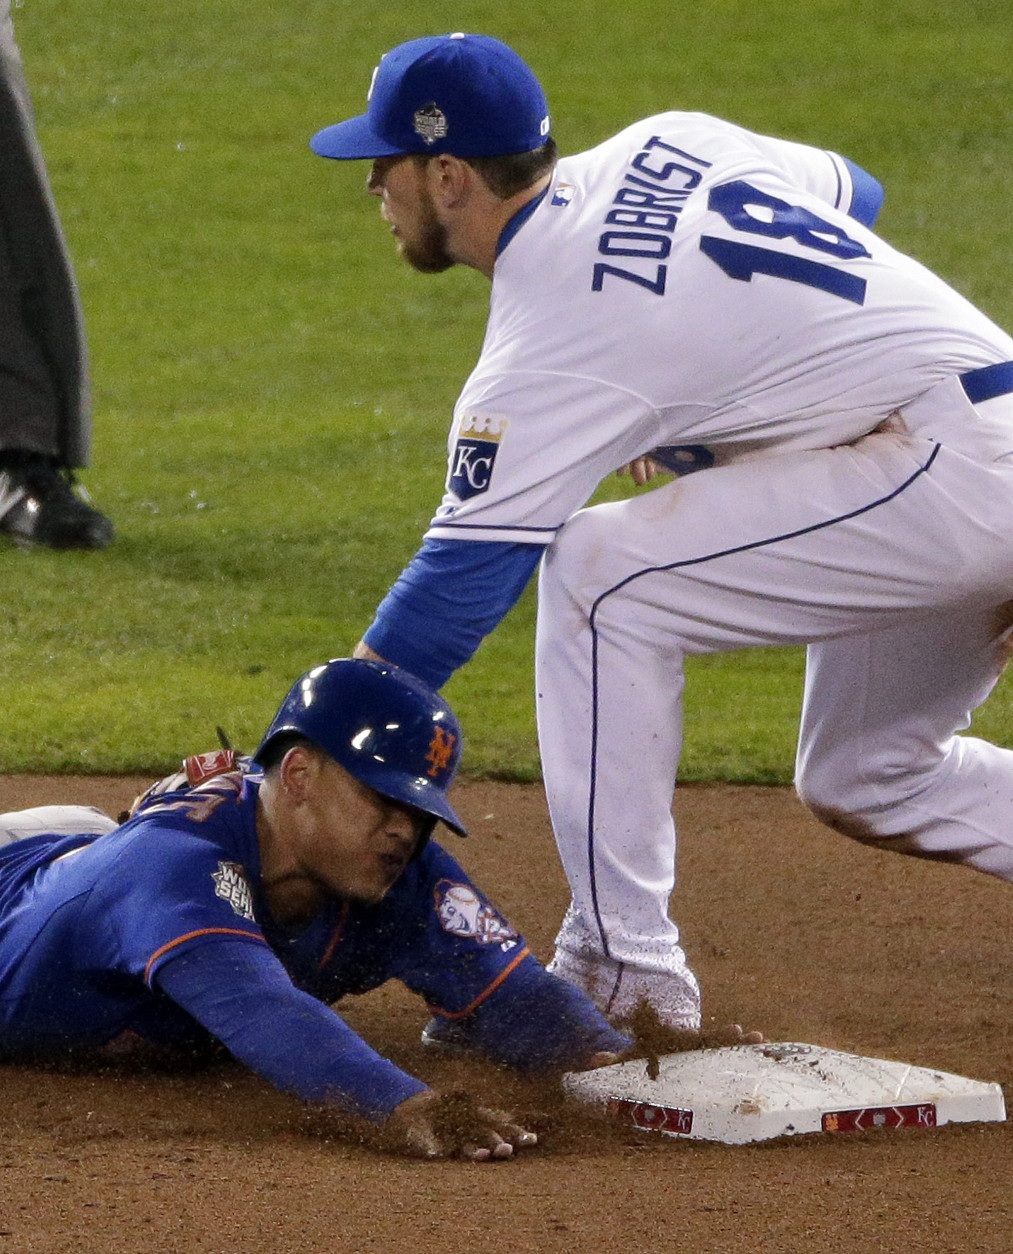 New York Mets' Juan Lagares, left, steals second base past Kansas City Royals second baseman Ben Zobrist during the eighth inning of Game 1 of the Major League Baseball World Series Tuesday, Oct. 27, 2015, in Kansas City, Mo. (AP Photo/Charlie Riedel)